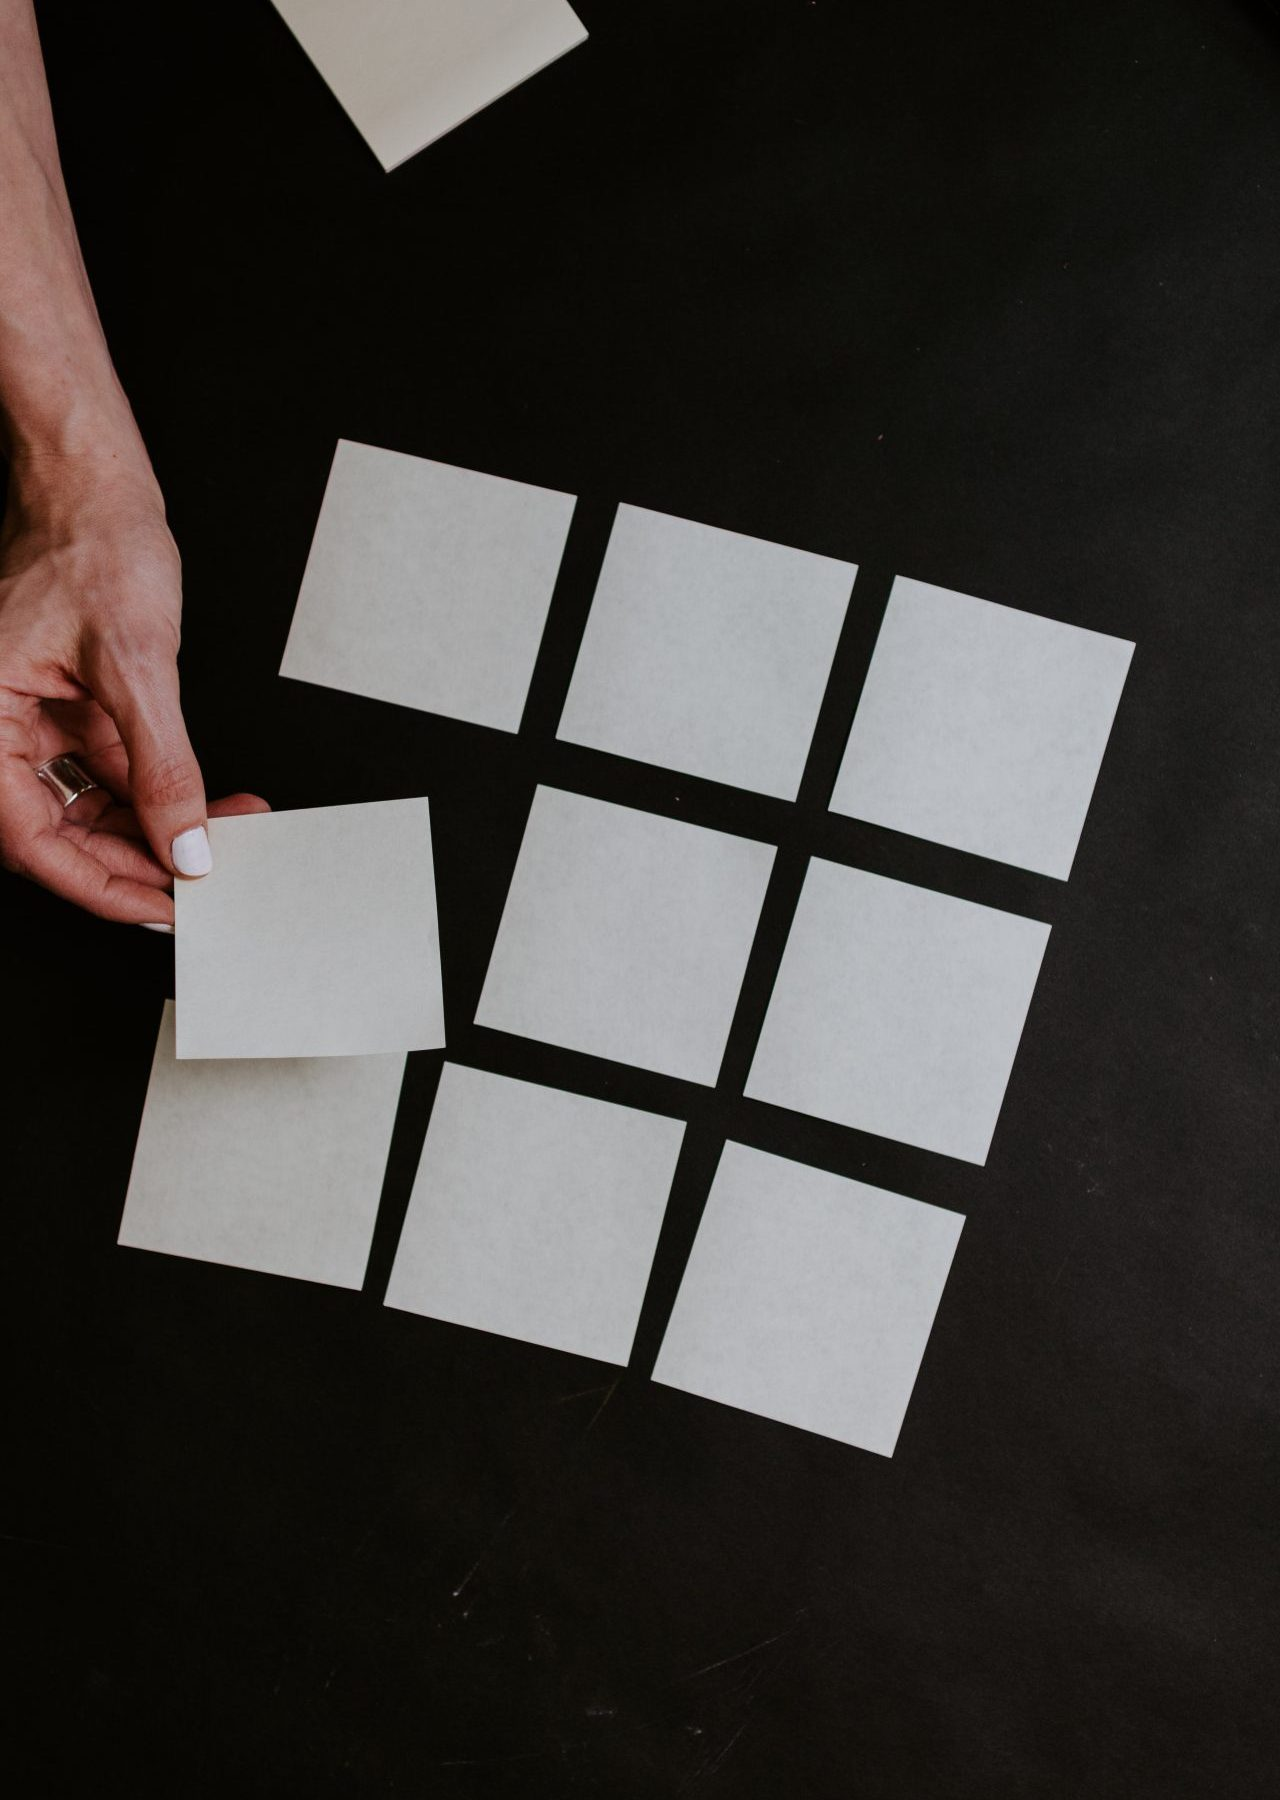 person holding white and black checkered card